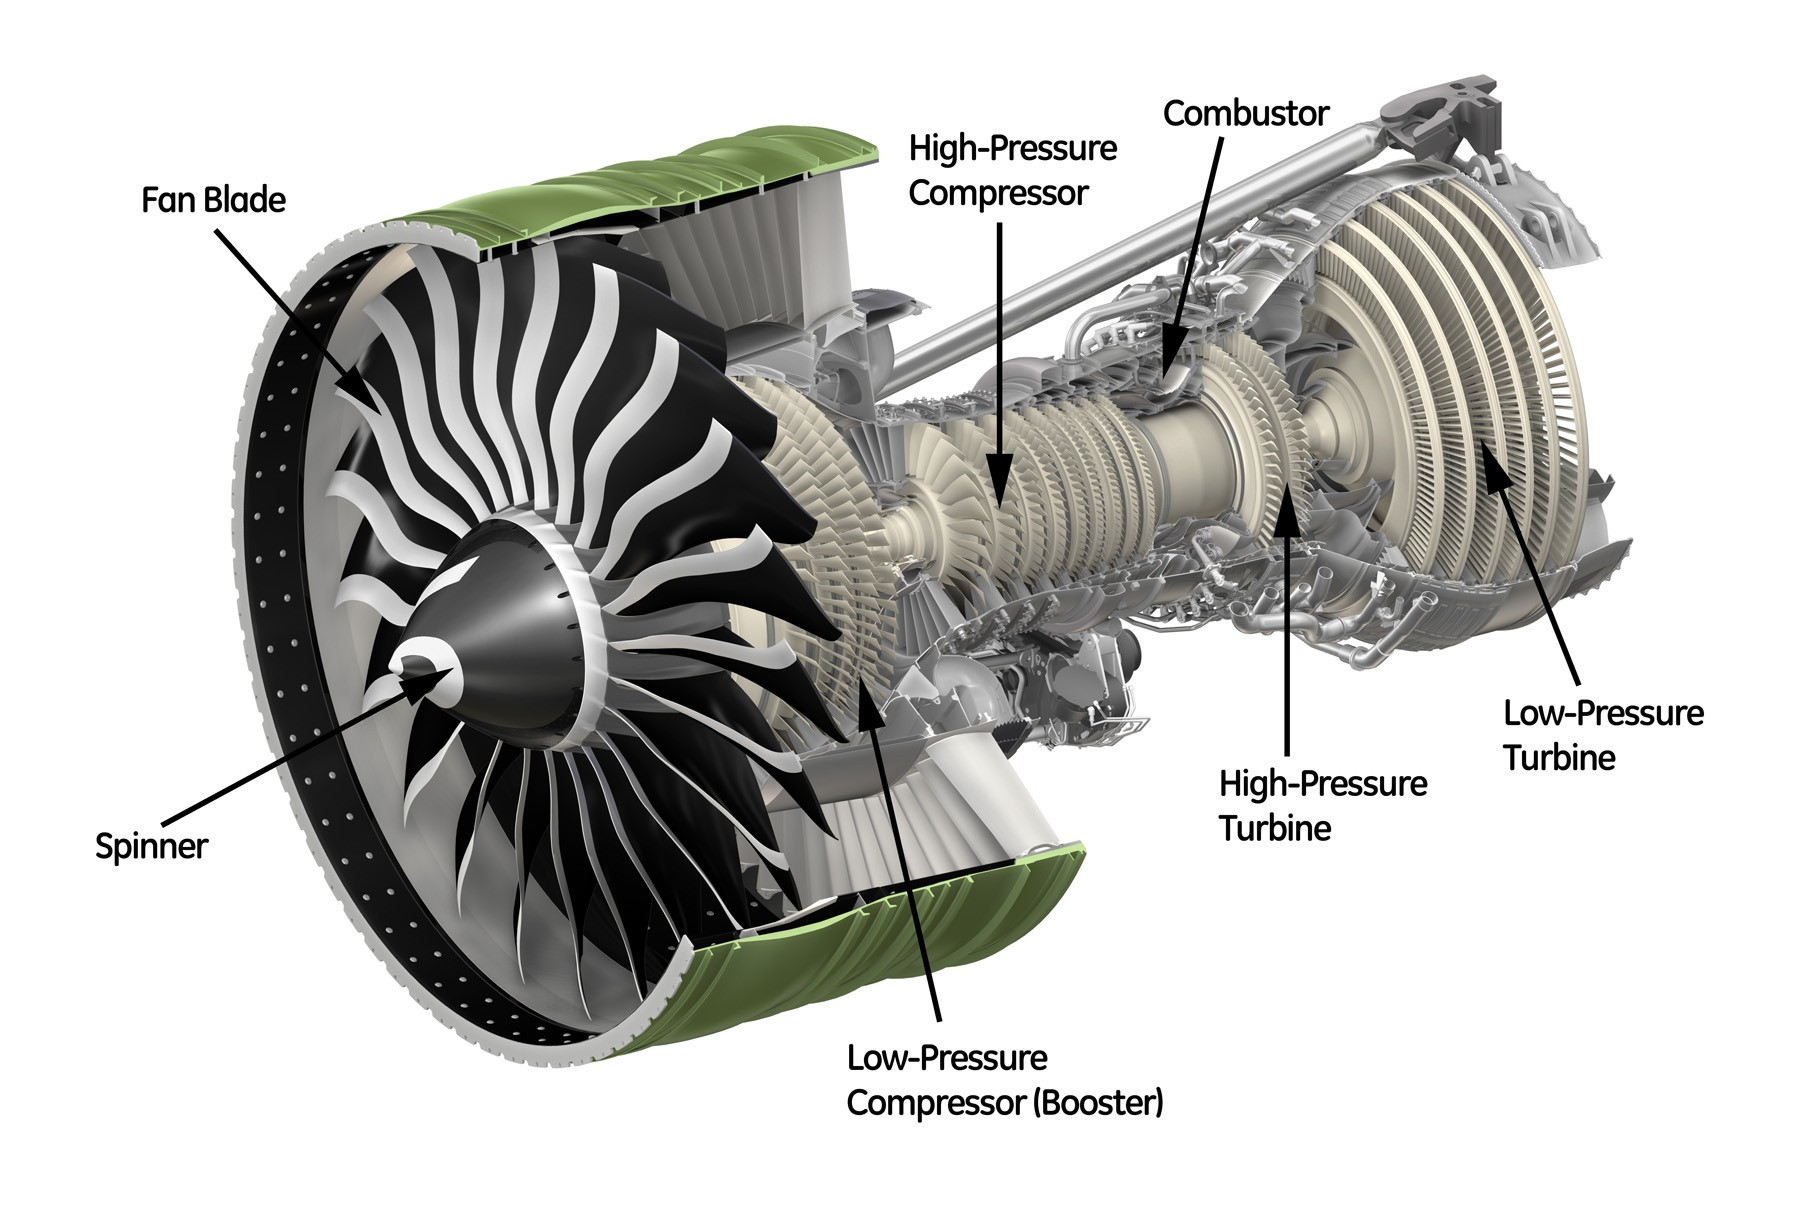 Helicopter Turbine Engine Diagram General Electric Engines Win S Online Of